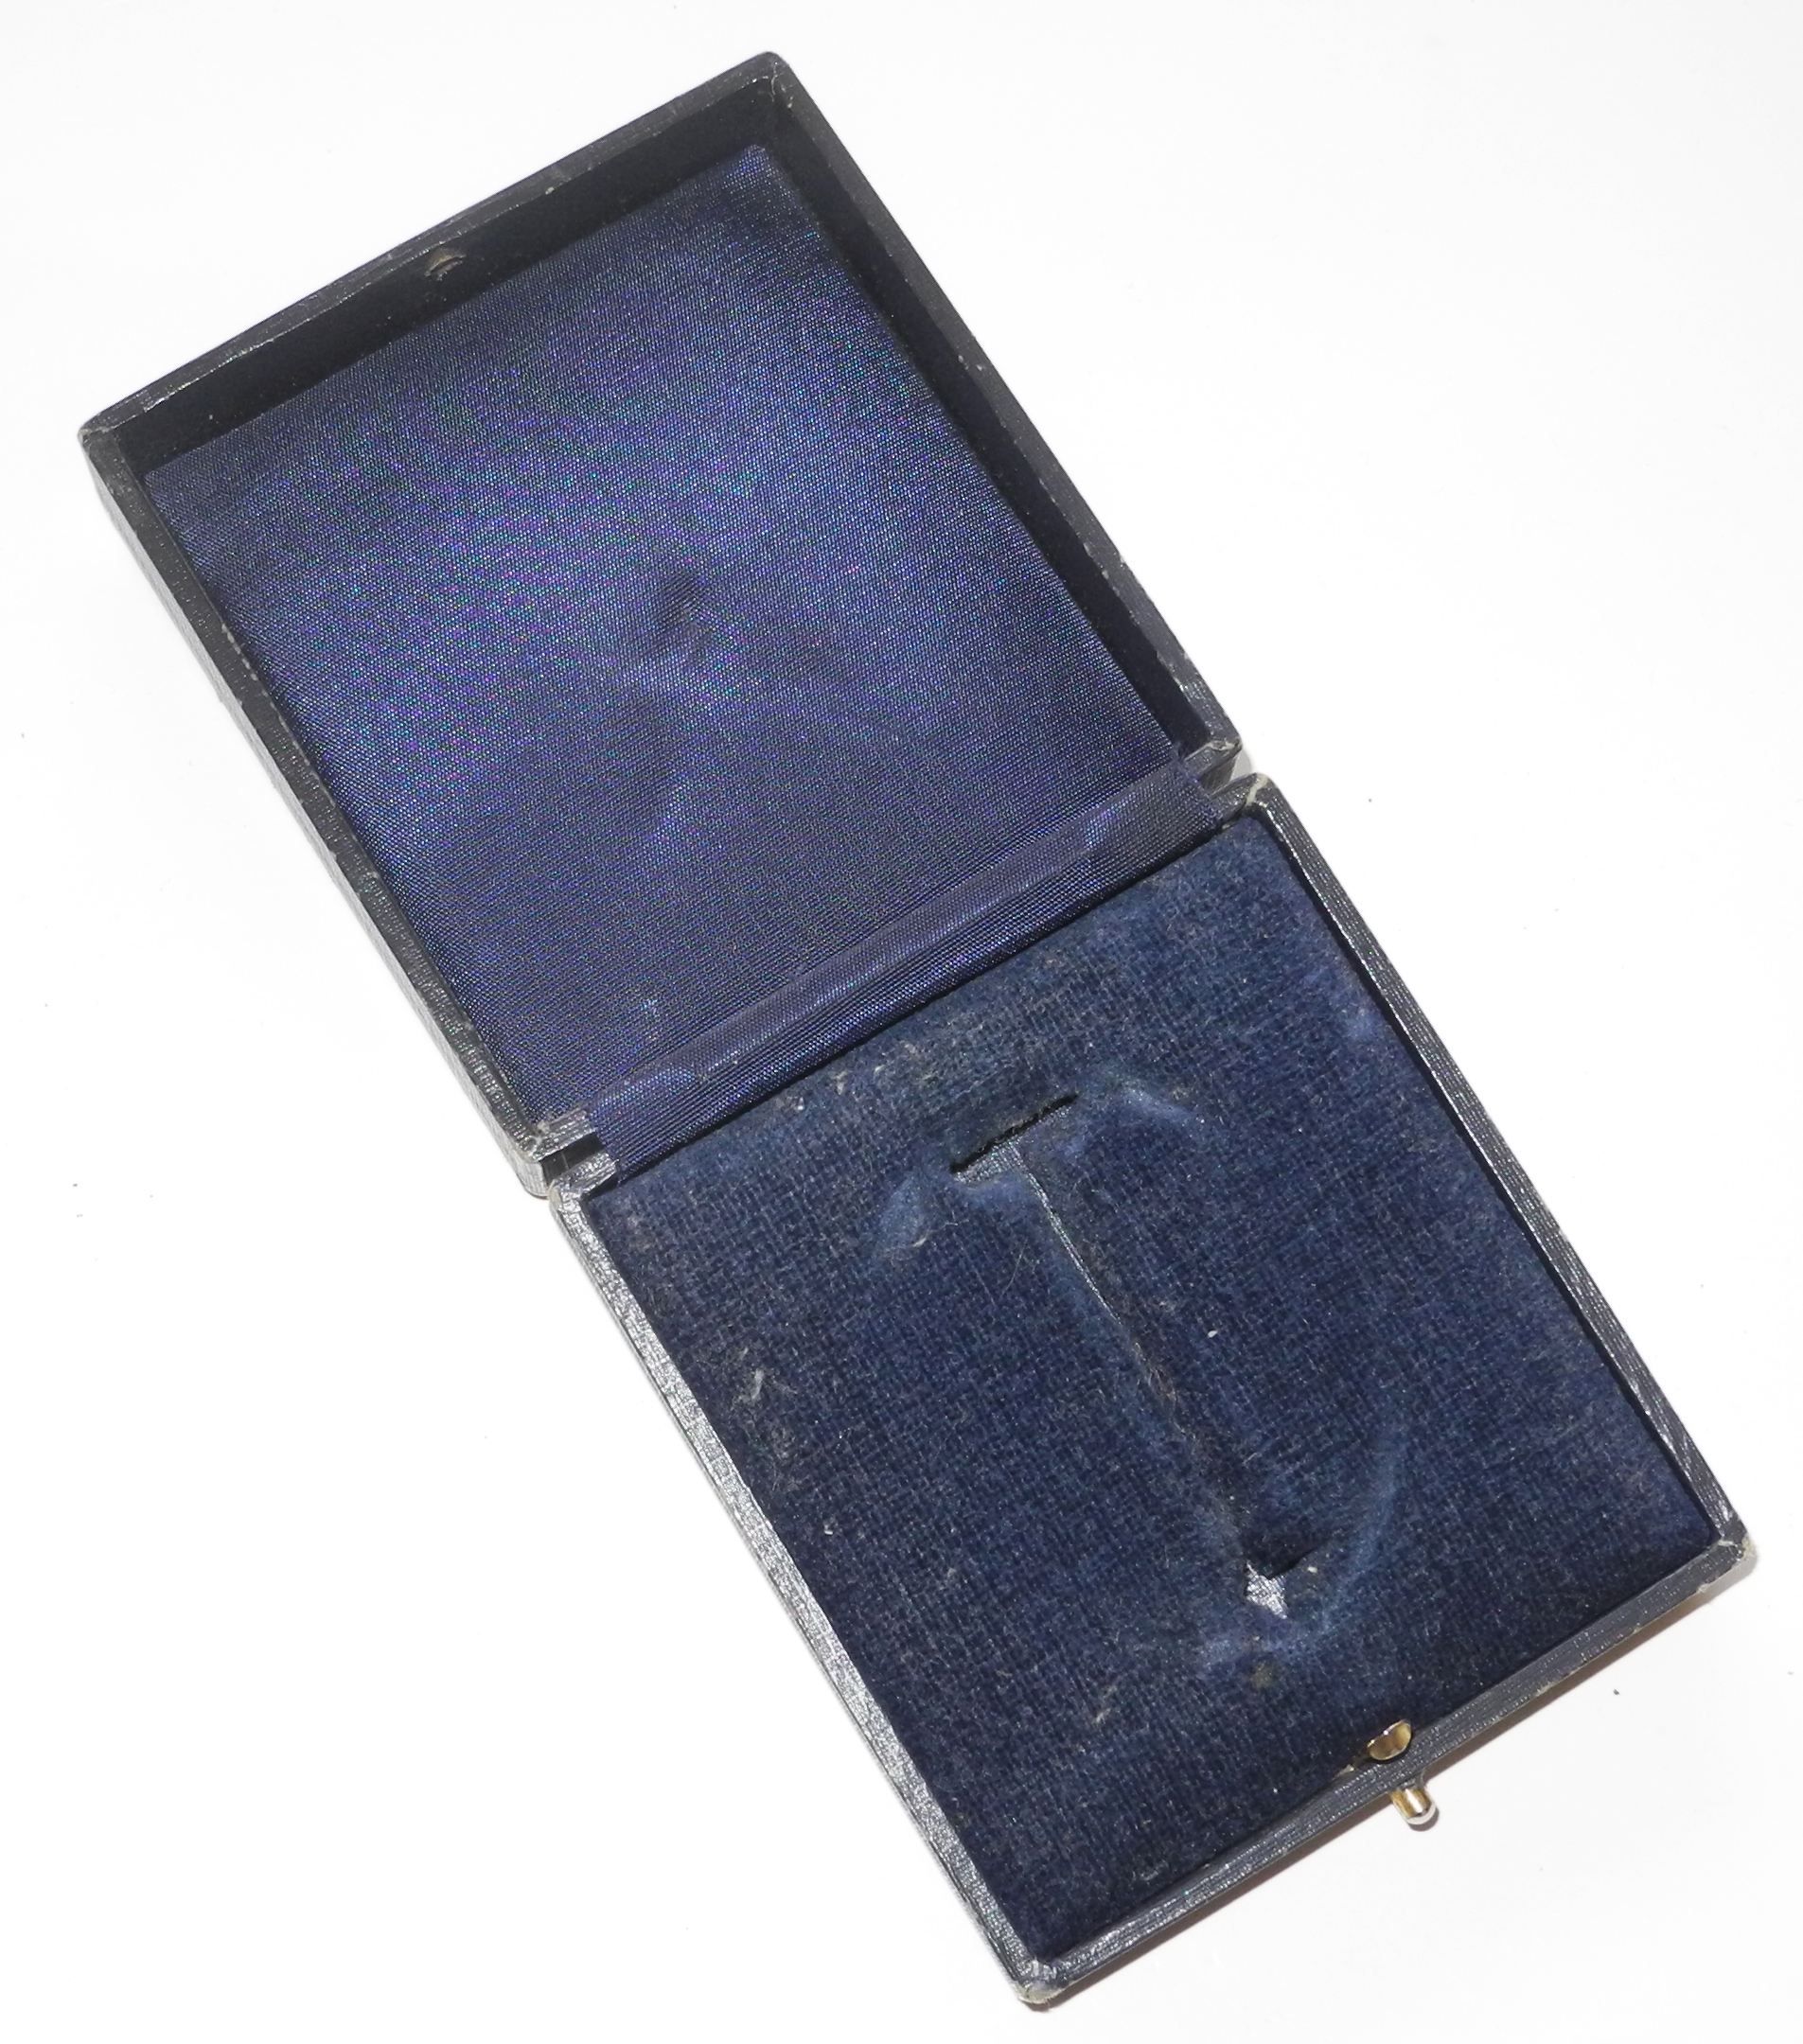 Luftwaffe case for pilot's badge